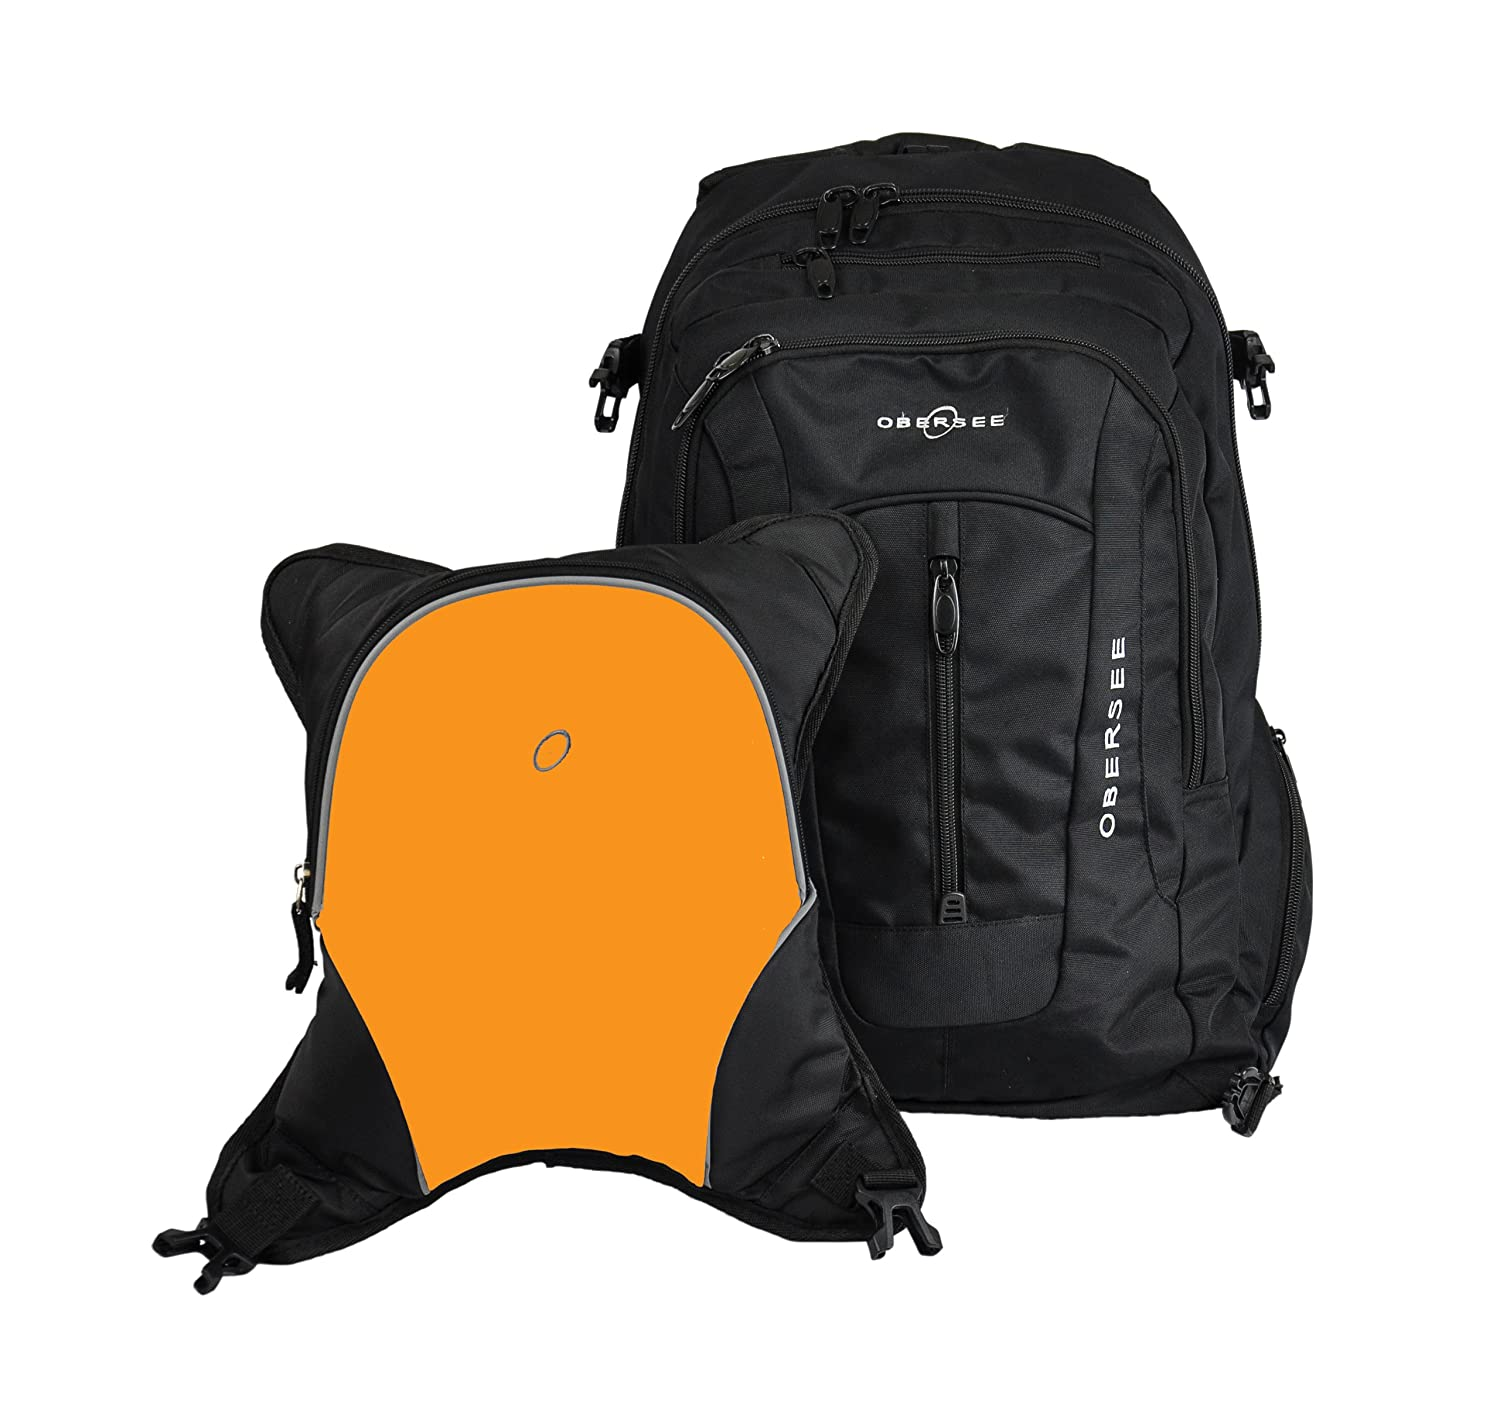 Bern Diaper Backpack, Shoulder Baby Bag, With Food Cooler, Clip to Stroller (Black/Orange)